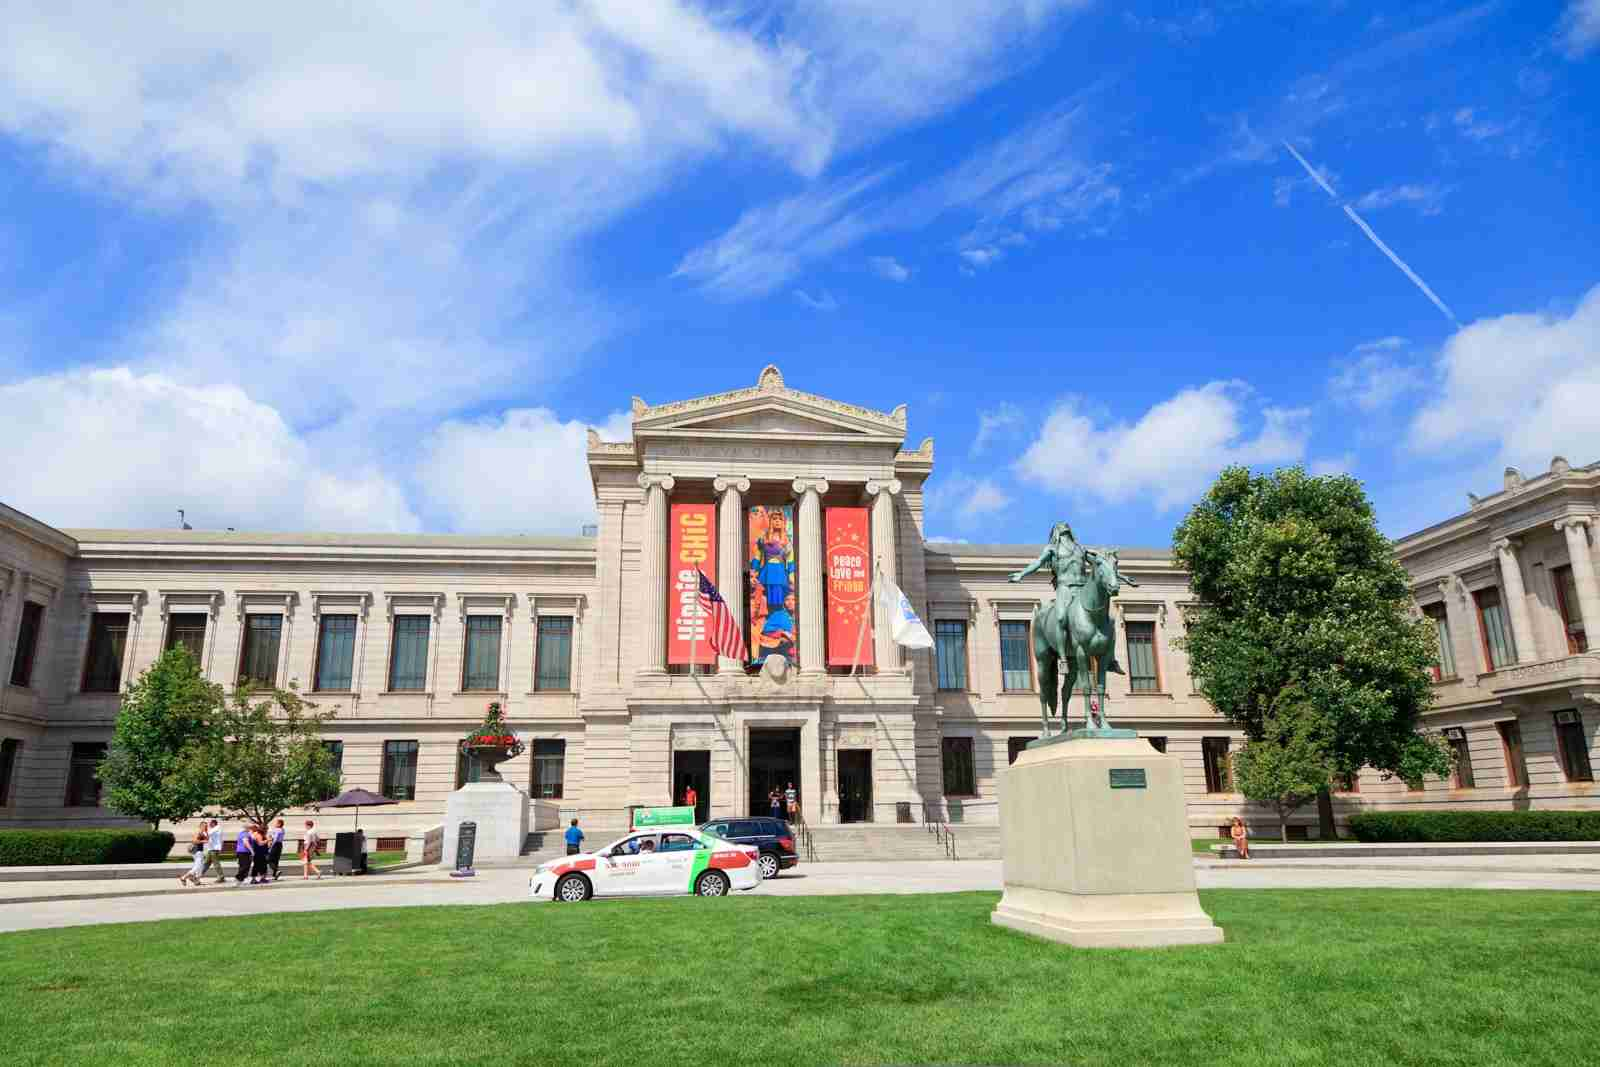 The Museum of Fine Arts in Boston, Massachusetts, is one of the largest museums in the United States. (Photo via Getty Images)